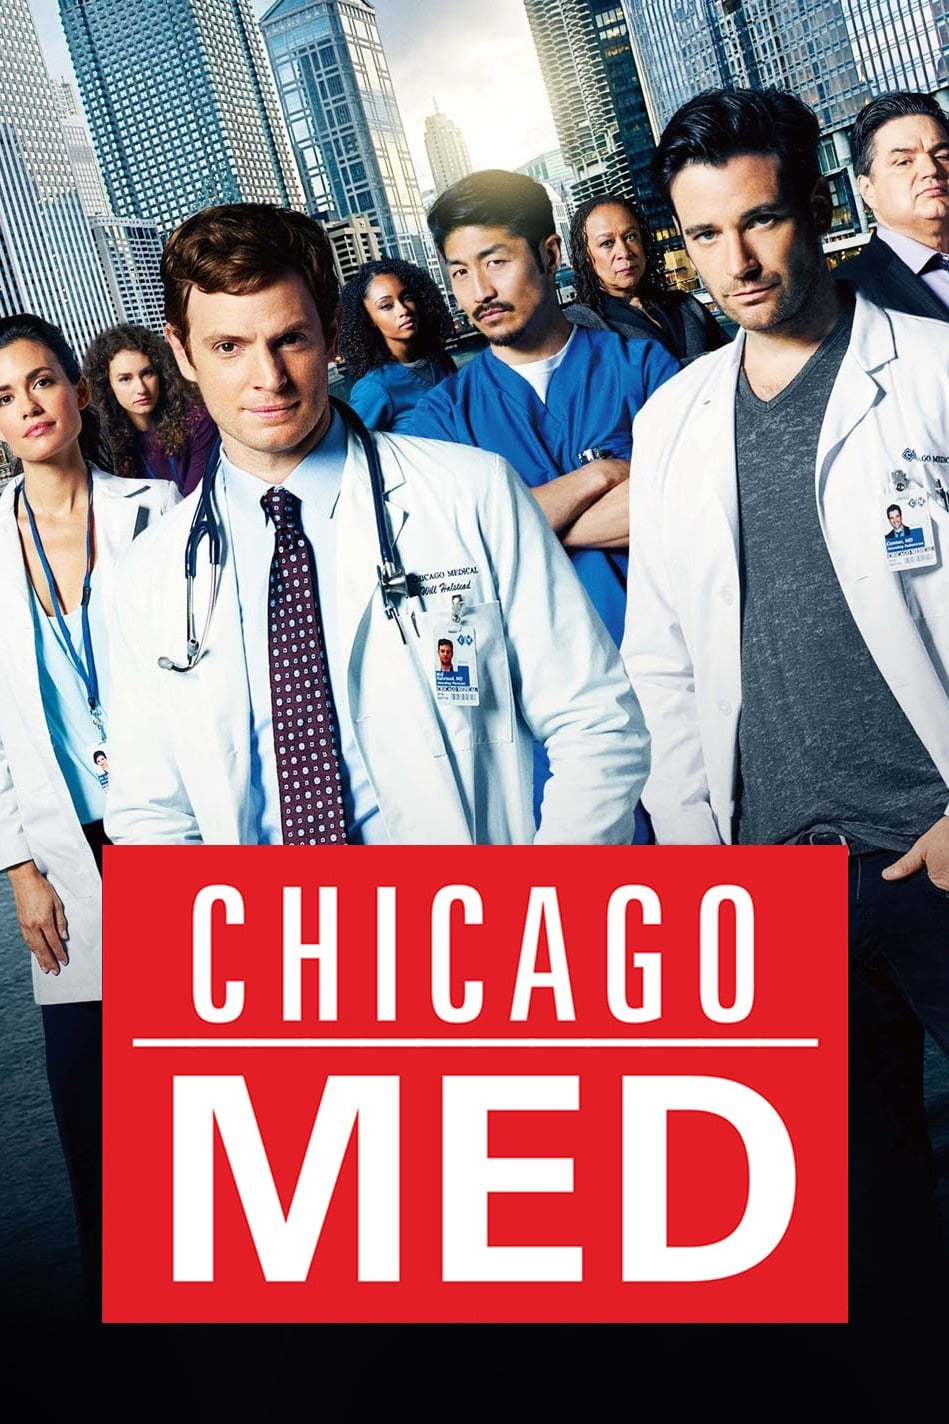 image for Chicago Med